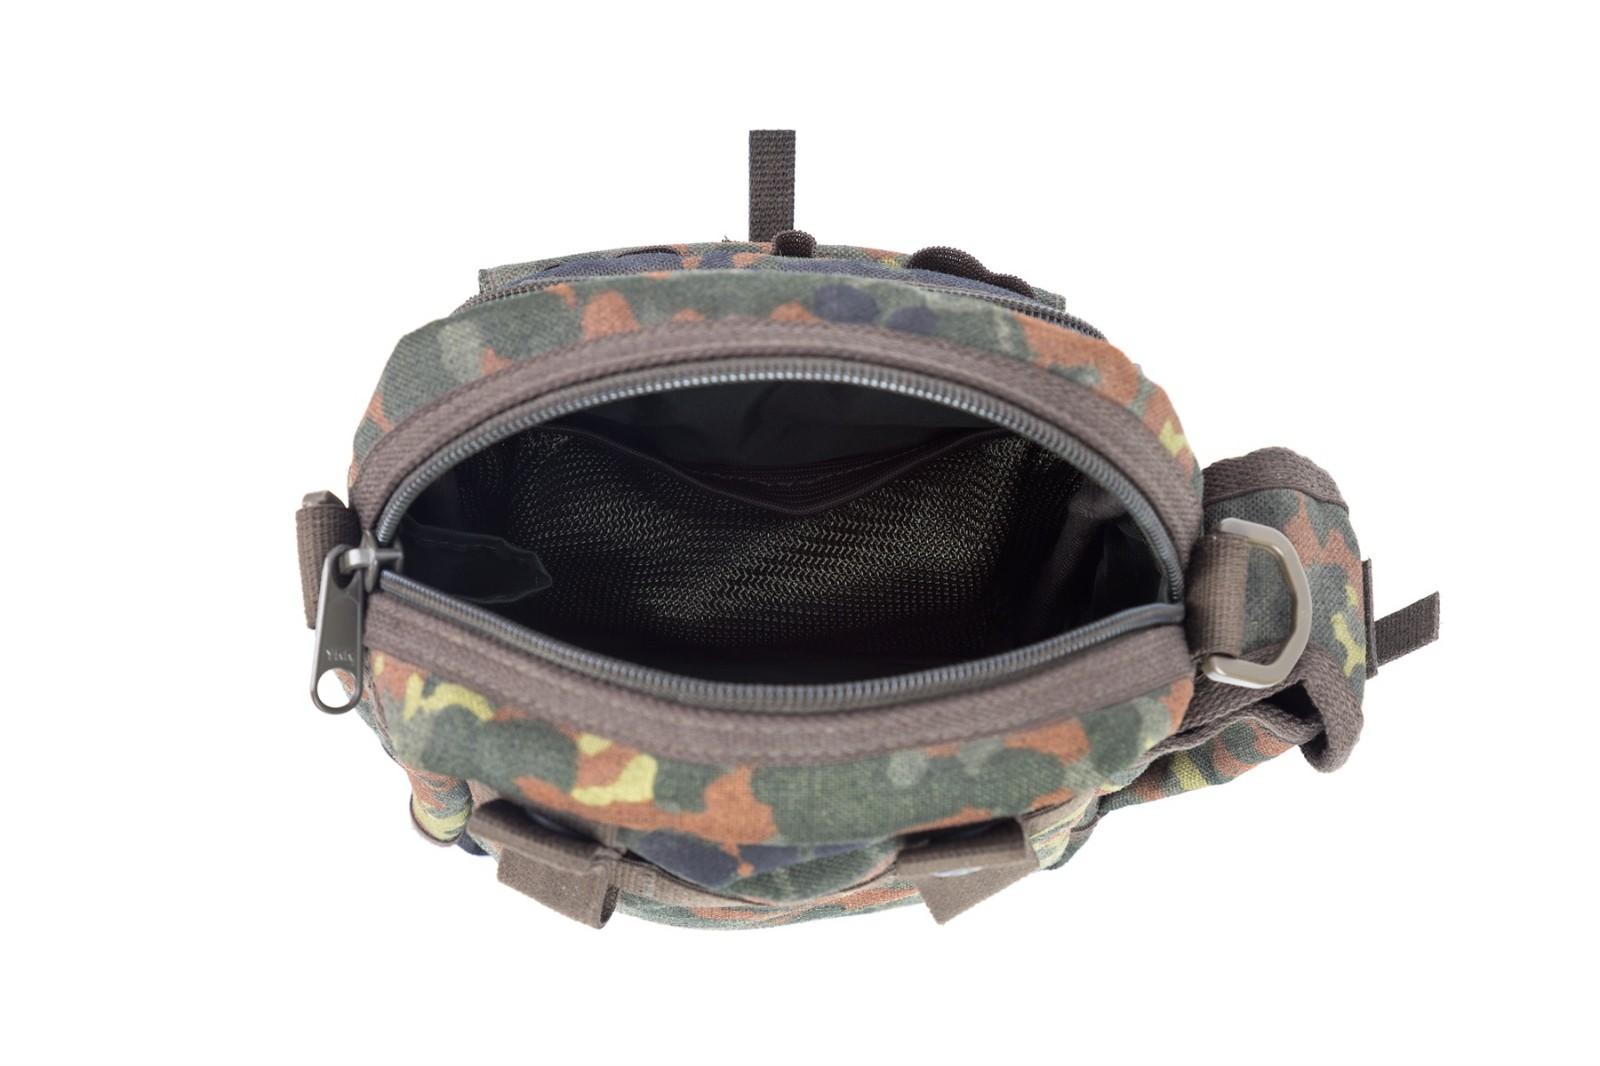 GF bags-Professional Military Gear Bags and Tactical Pouch Bag From GF Bags-9